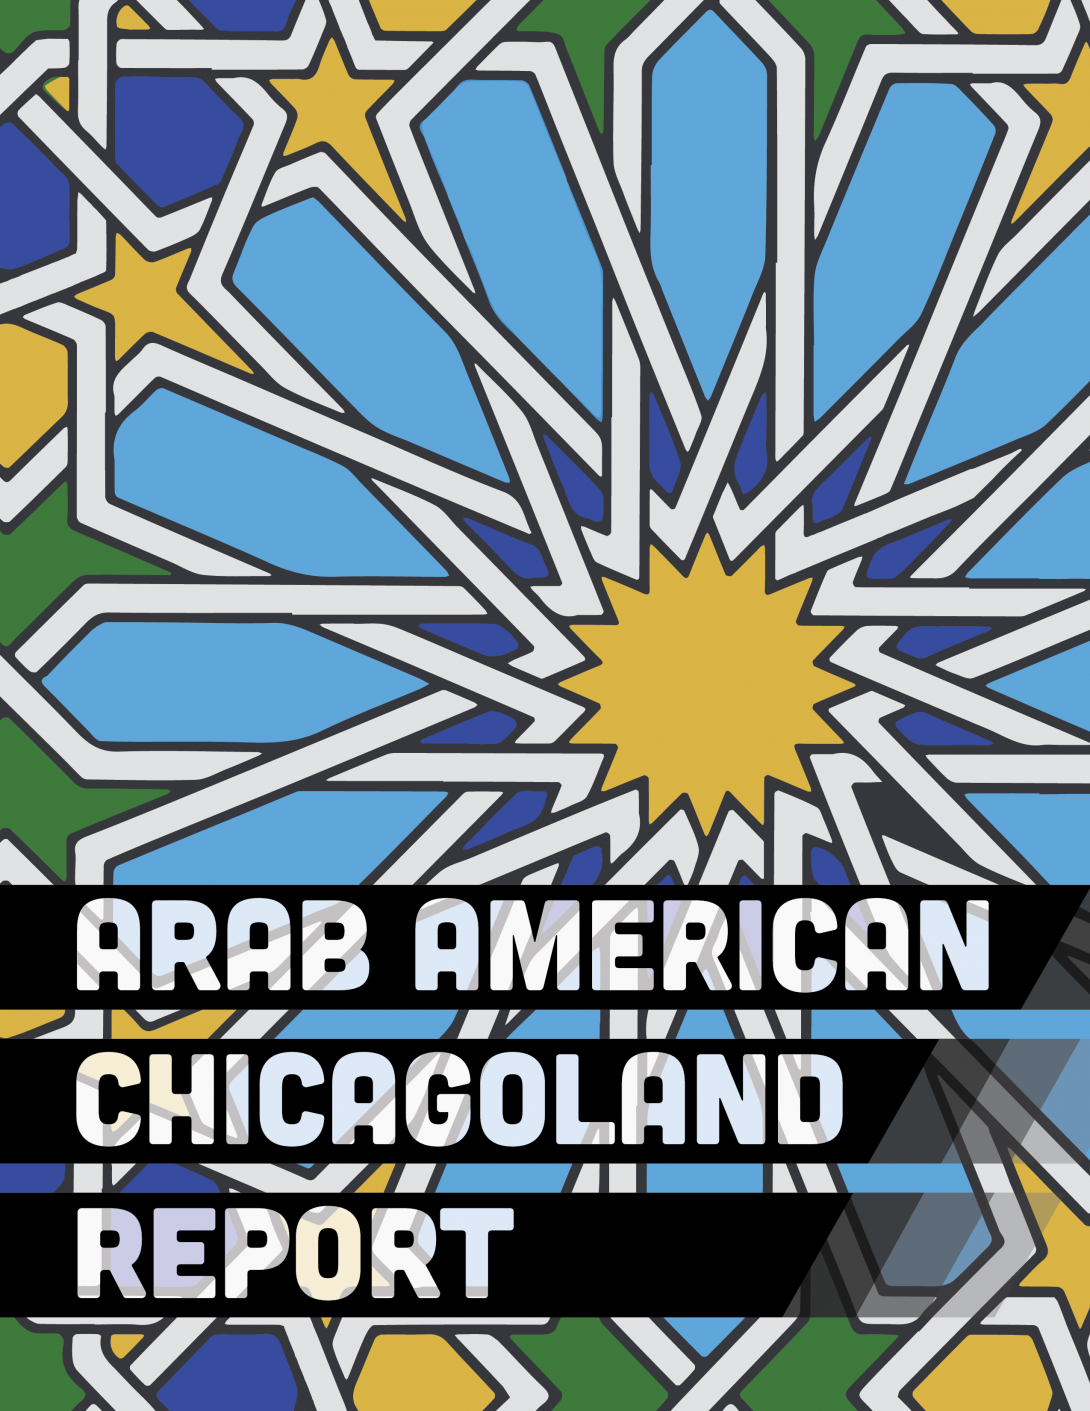 arabic tile design in yellow, dark blue, and light blue with the title of the report